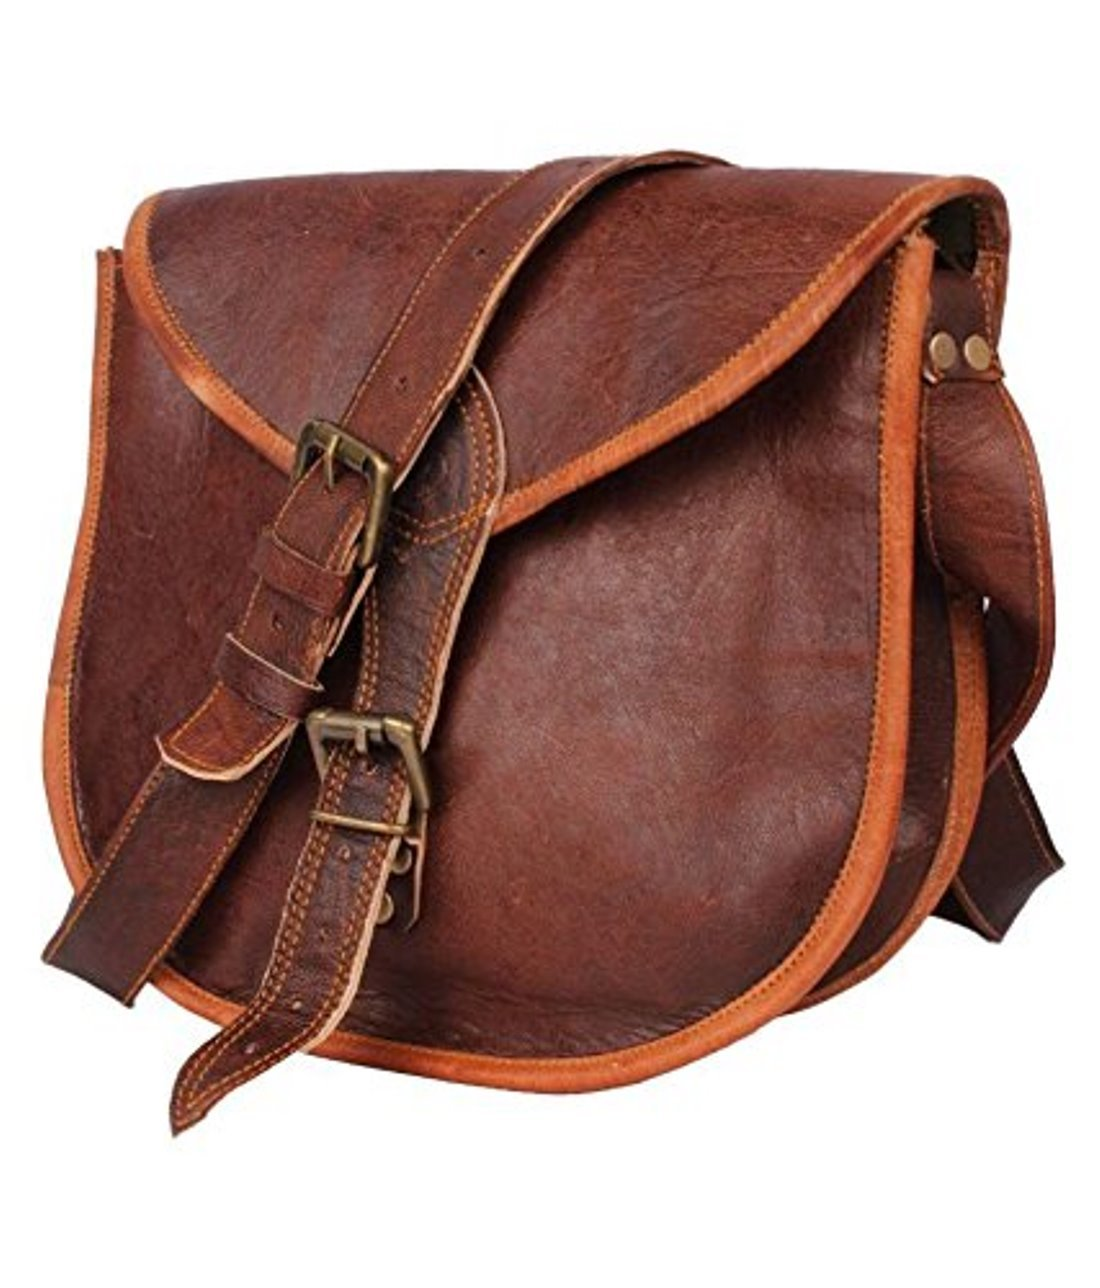 Brown 226 Vintage Brown Leather Messenger Bag